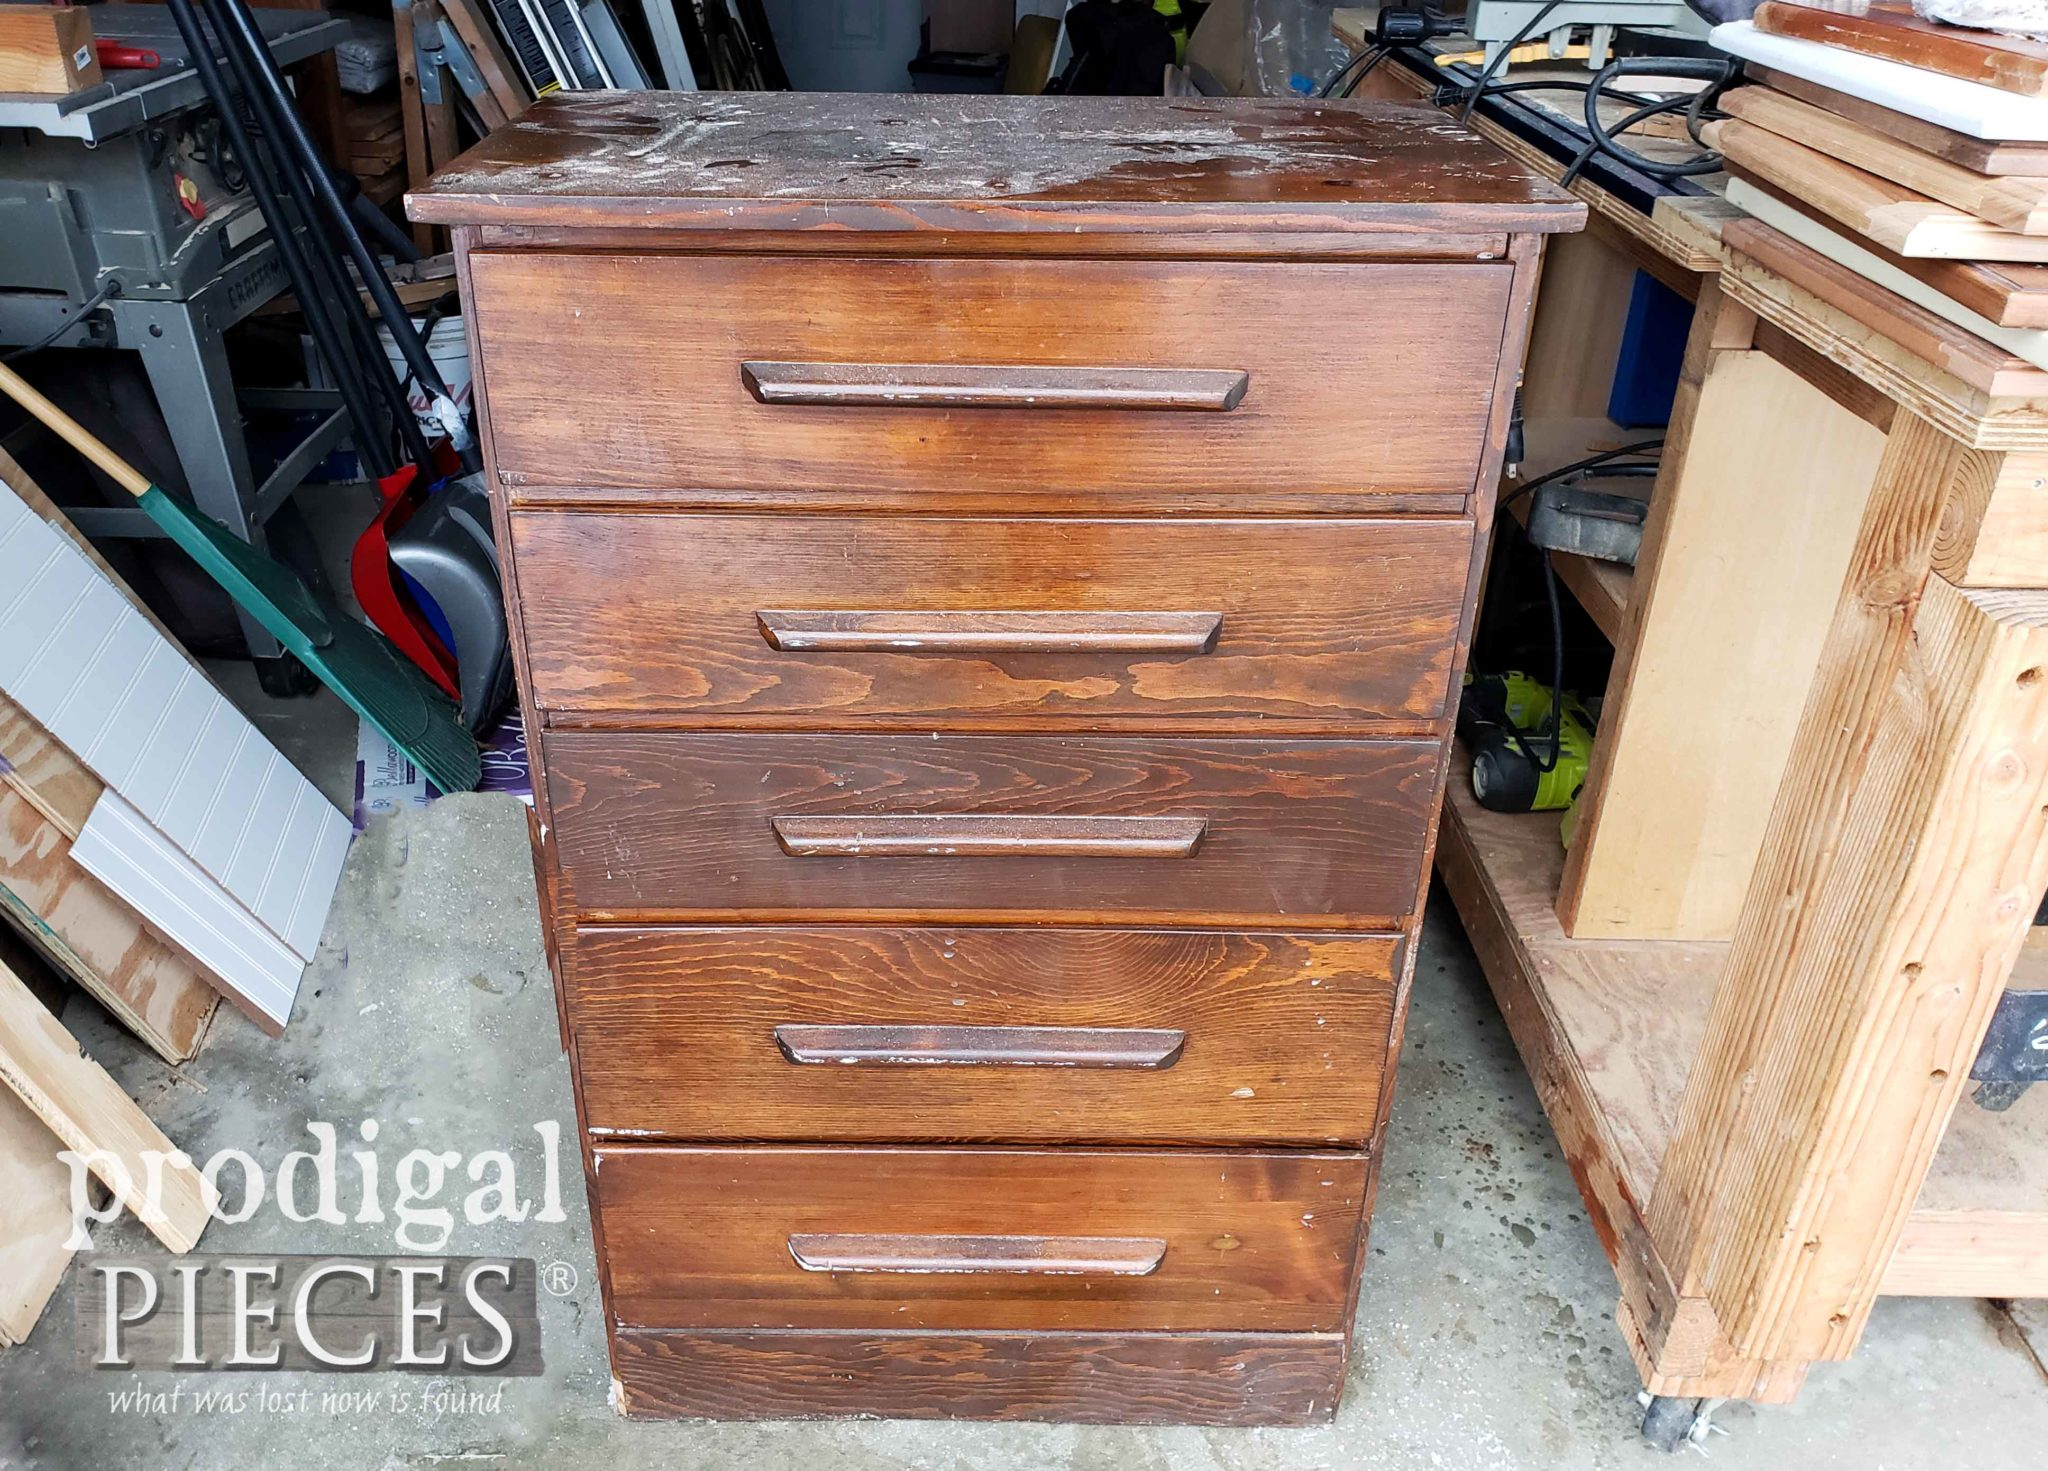 Damaged Chest of Drawers Before | prodigalpieces.com